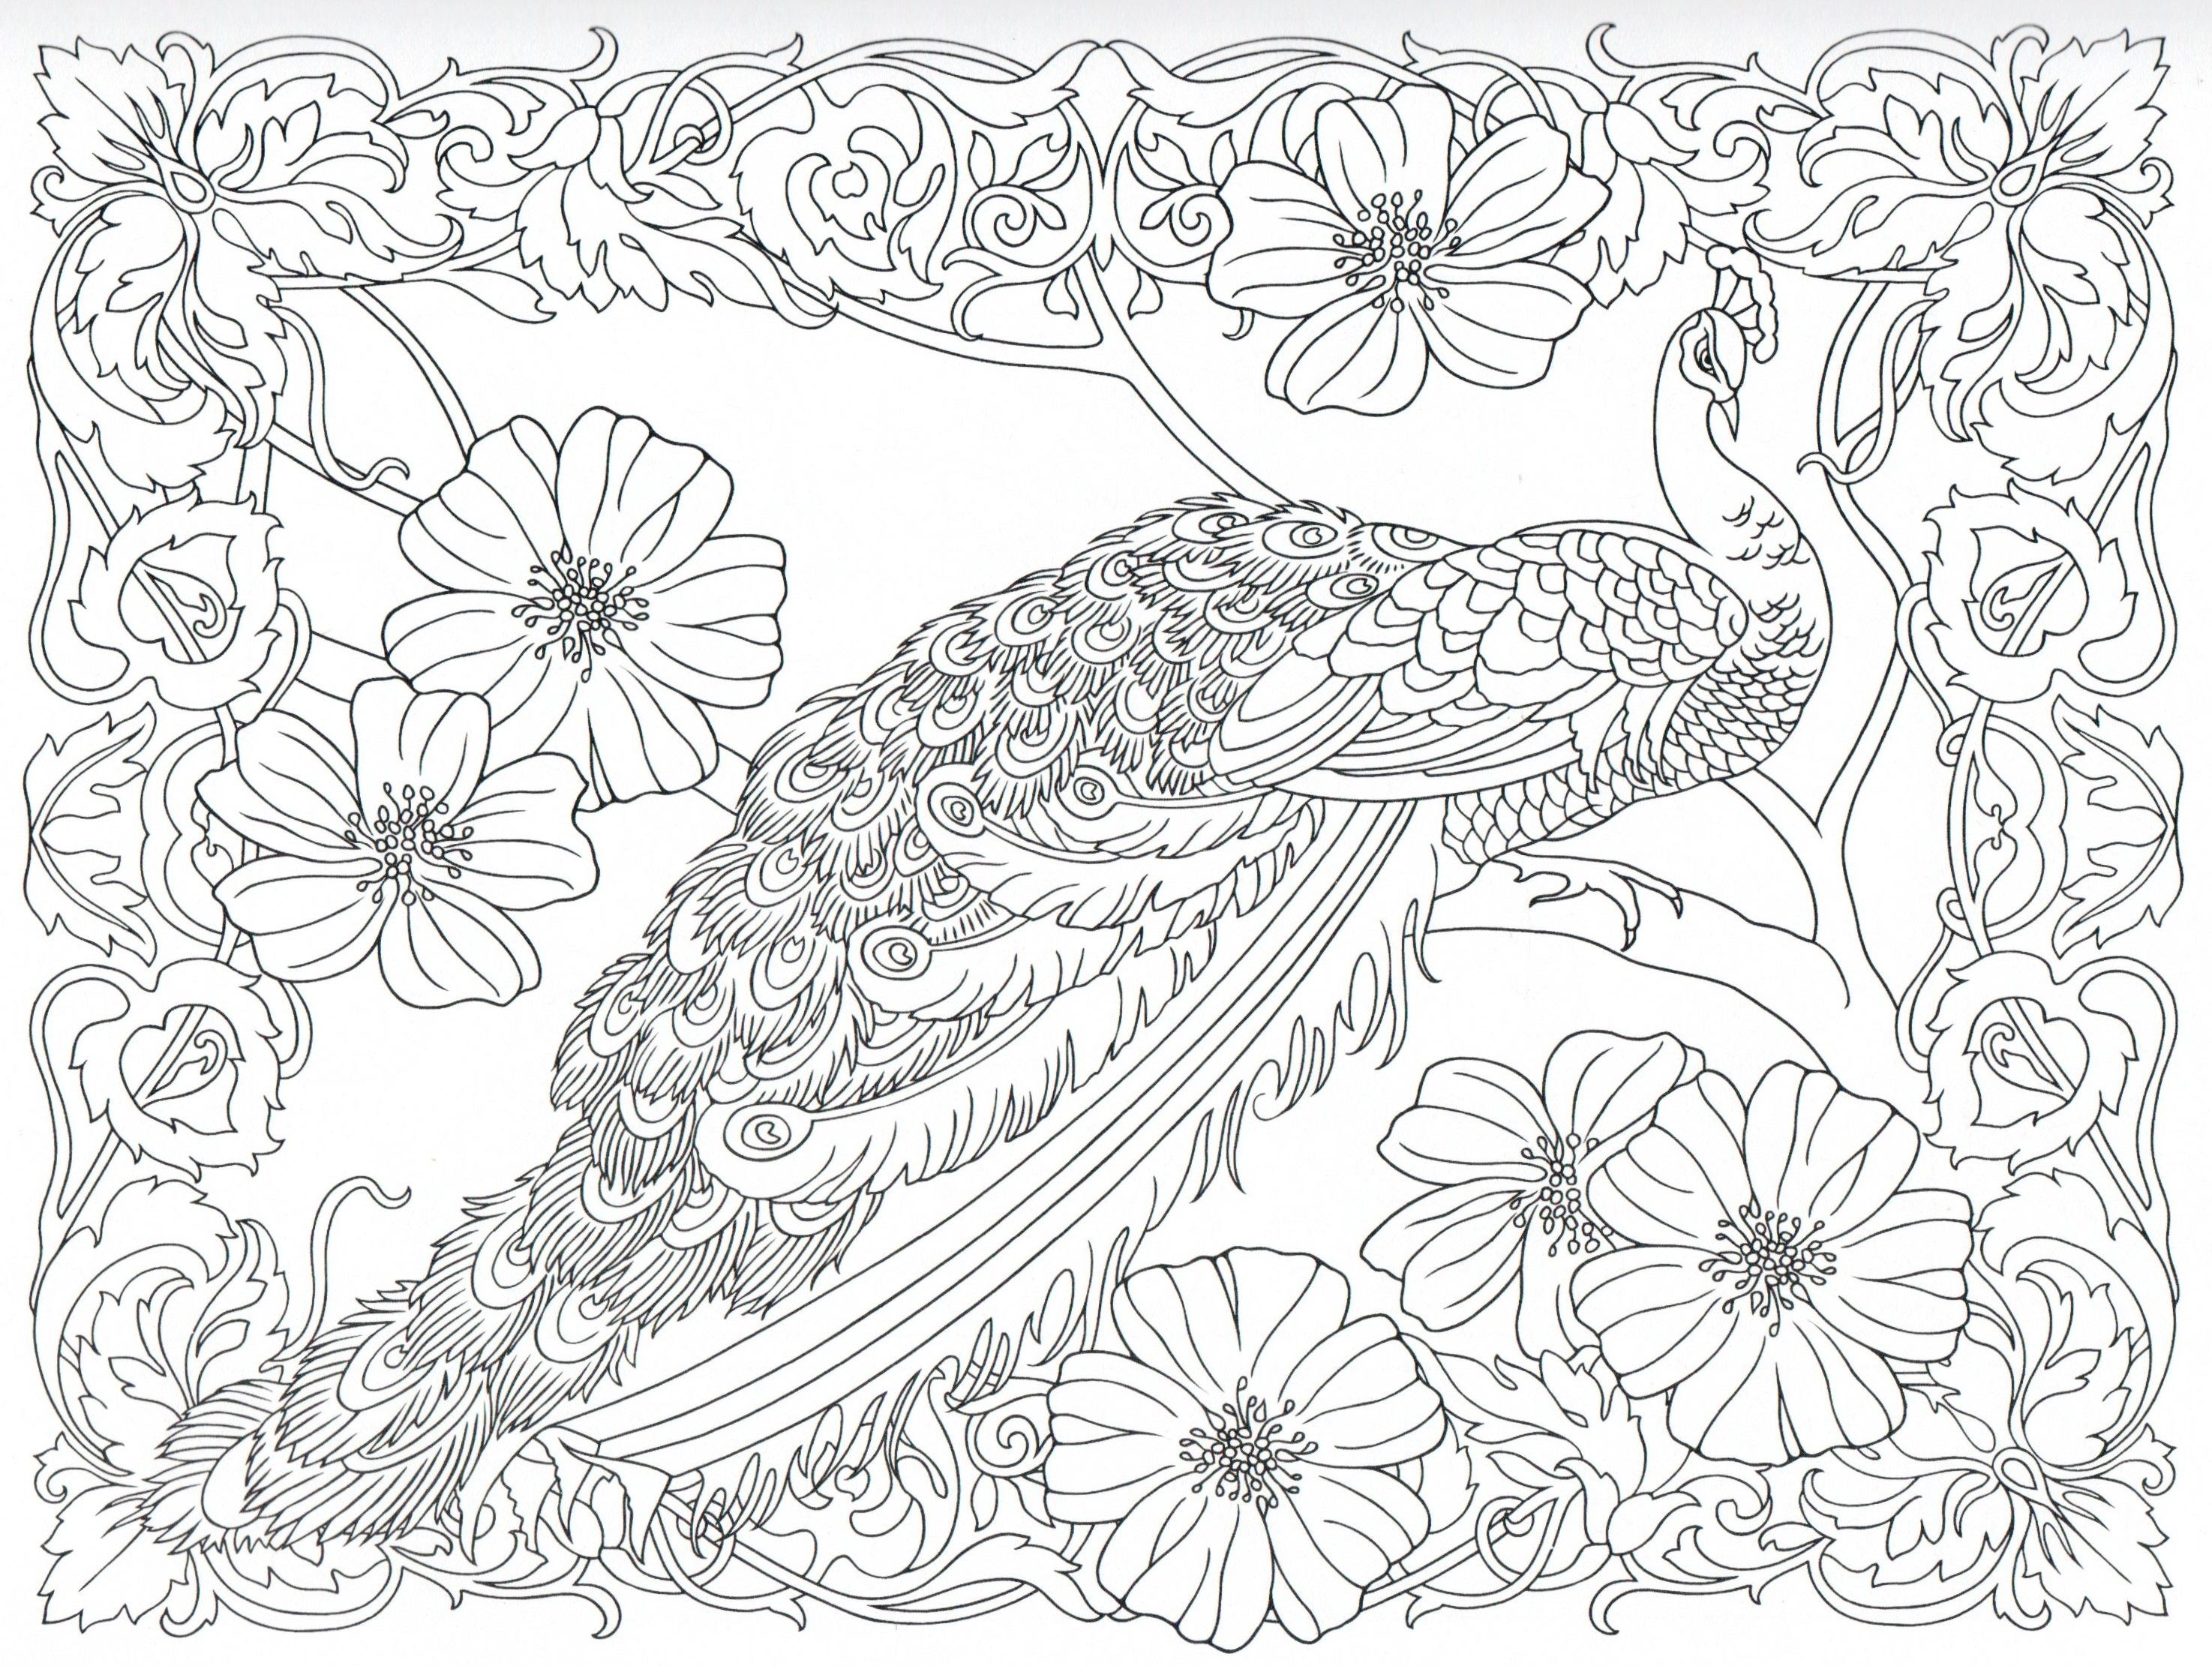 Peacock coloring page 25 31 color pages stencils for Peacock crafts for adults